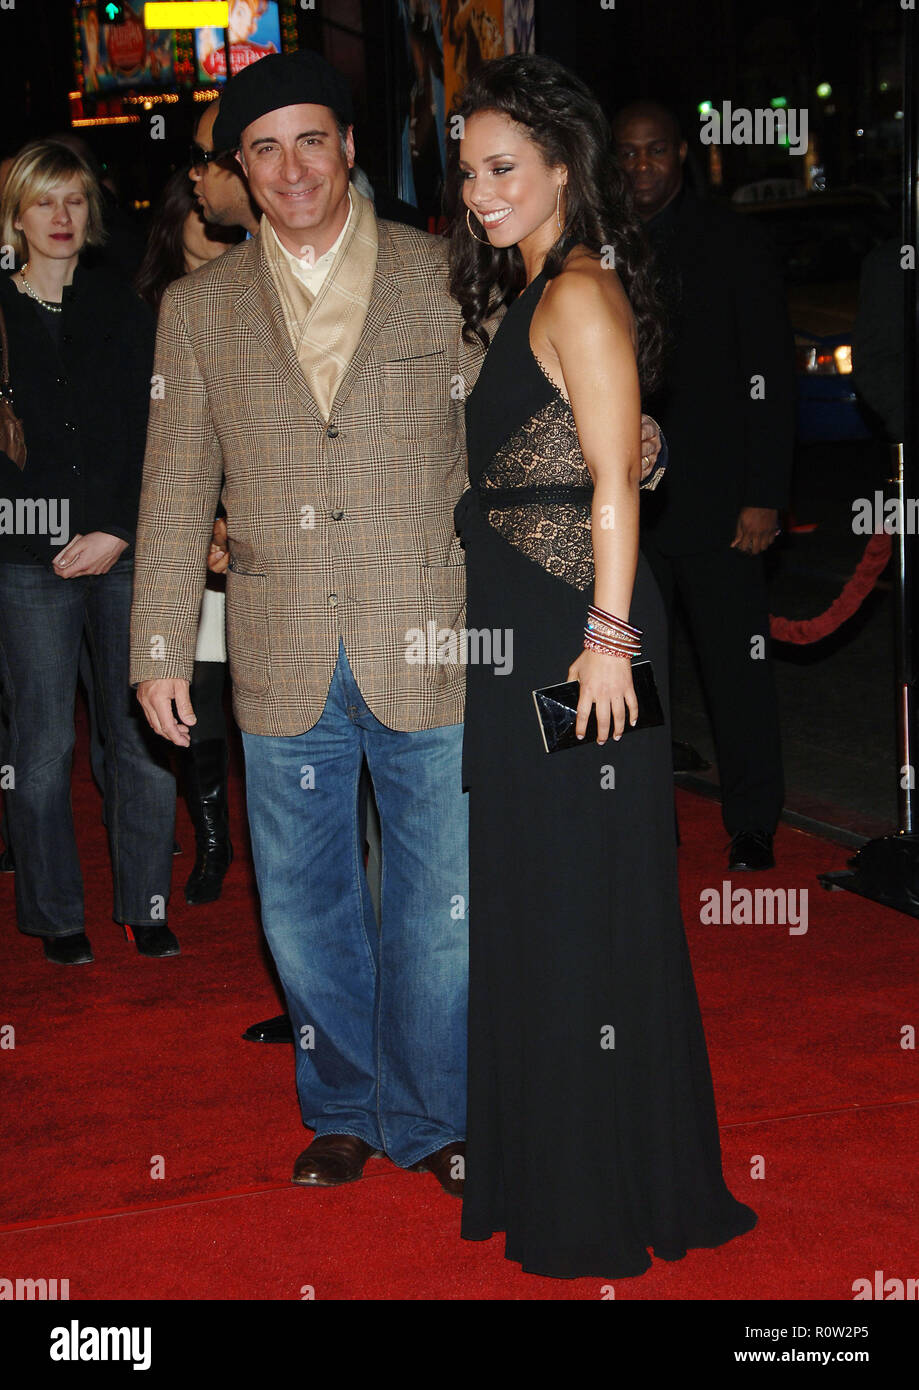 Andy Garcia and Alicia Keys arriving at the Smokin' Aces at the Chinese Theatre In Los Angeles. January 18, 2007.  eye contact full length           - - Stock Image